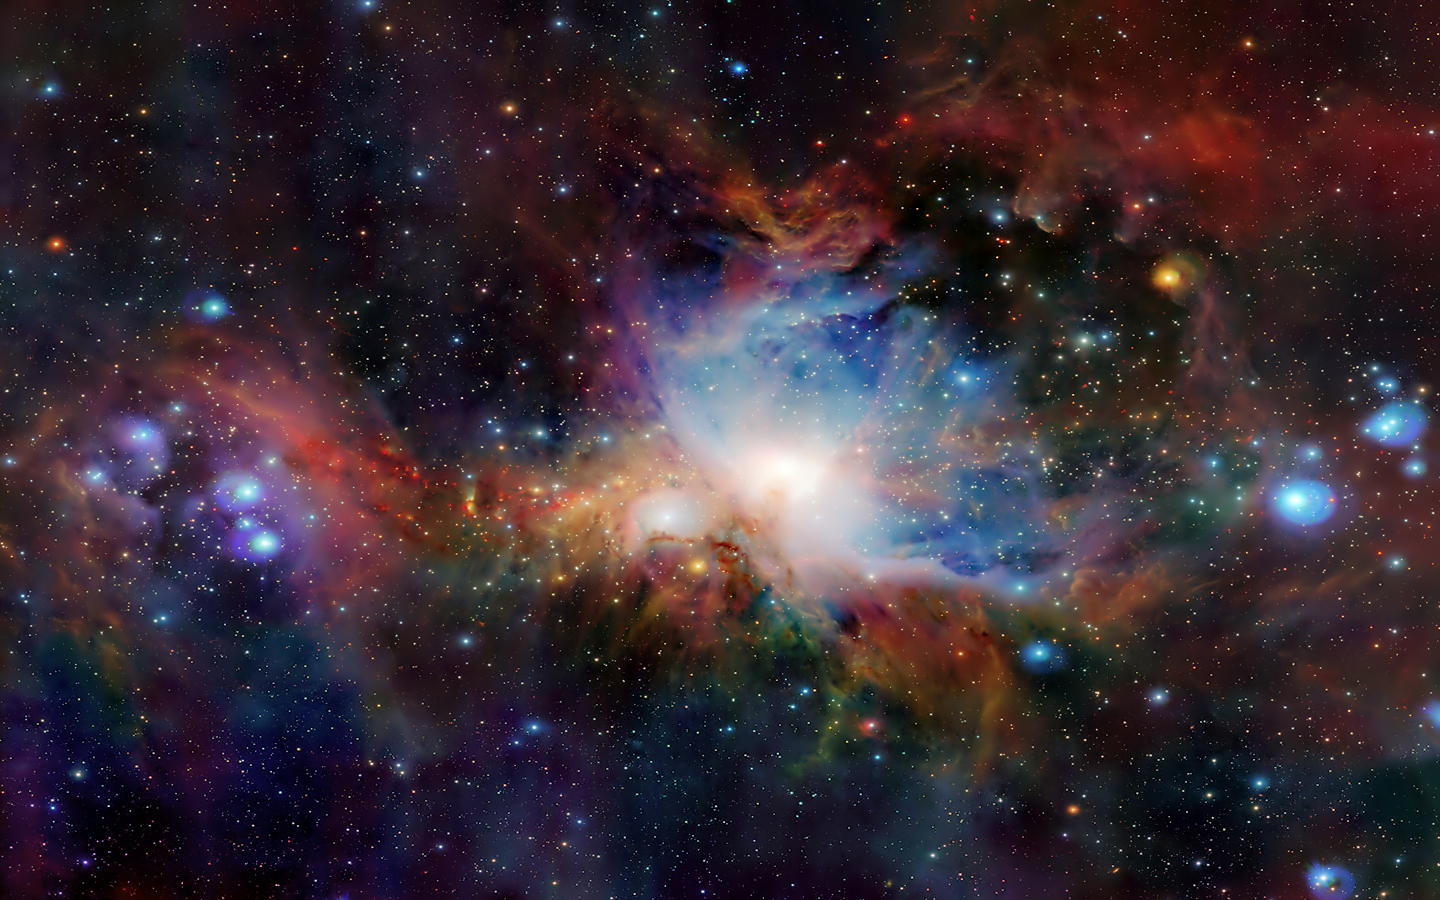 hd orion nebula - photo #23